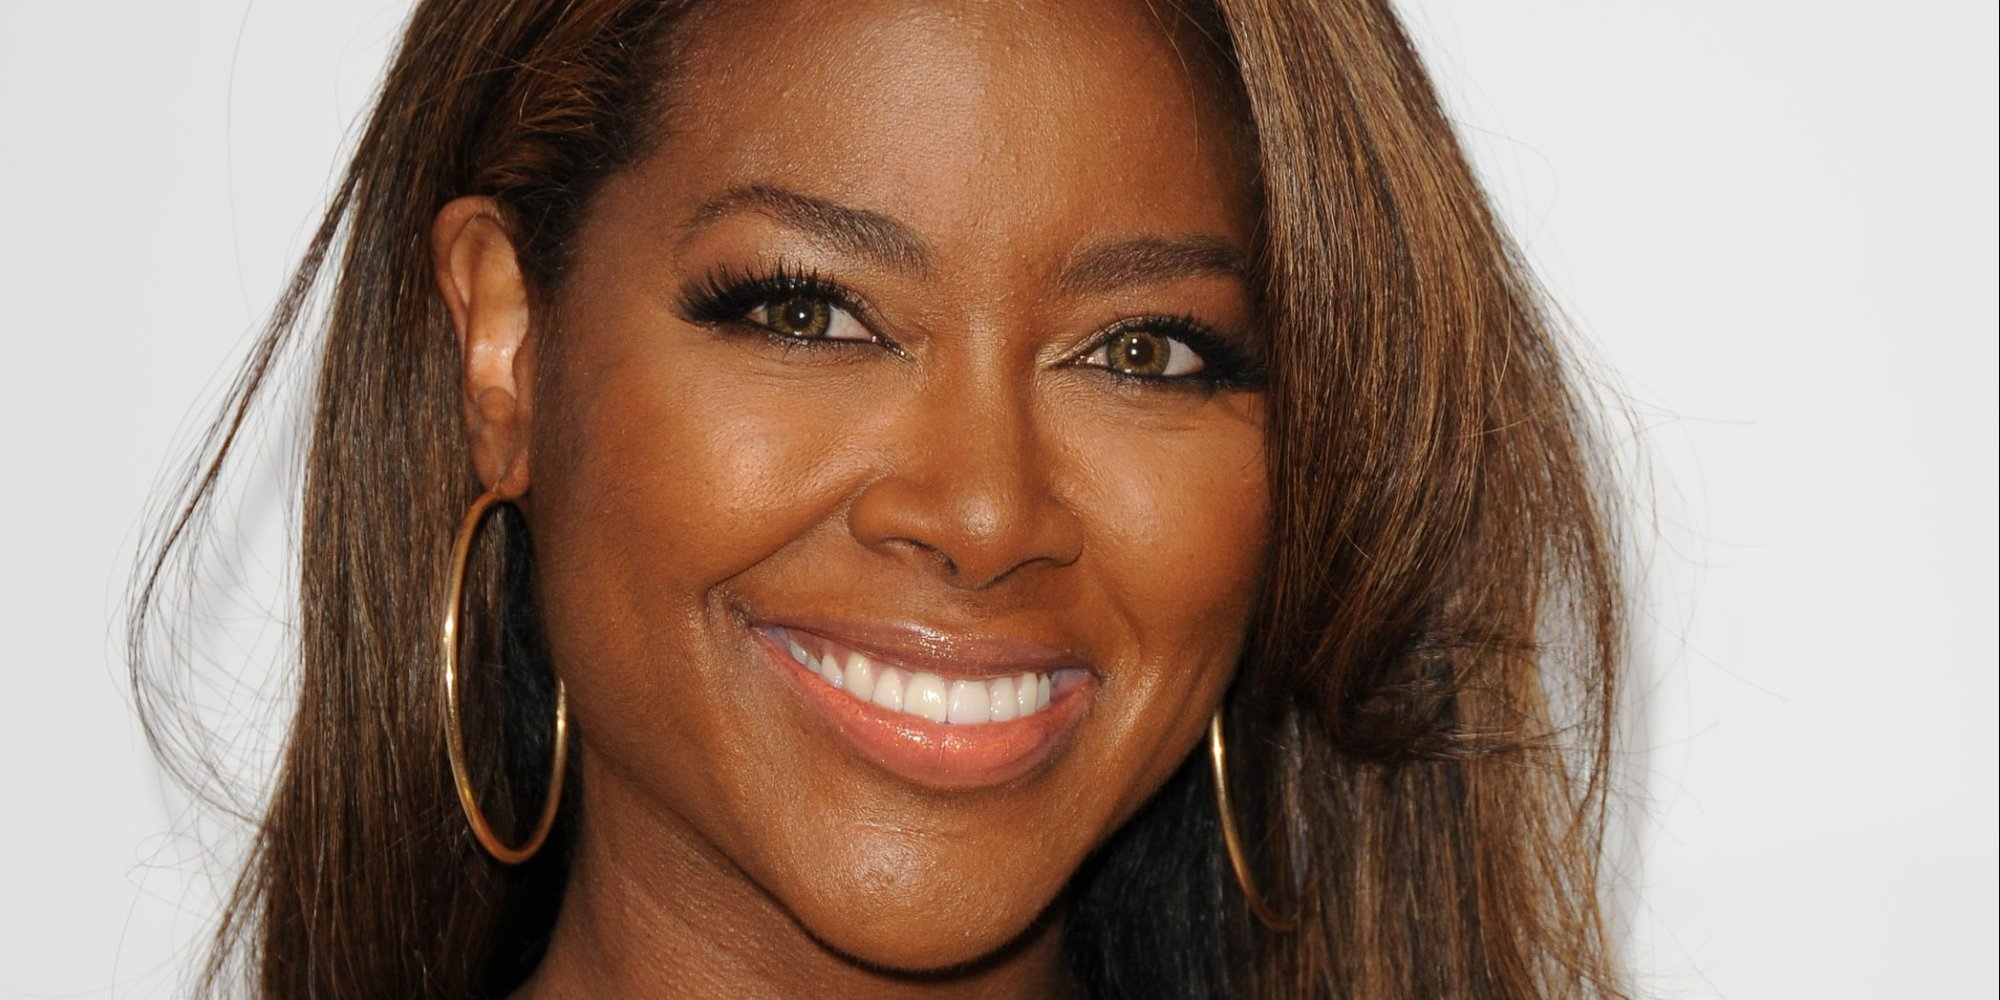 kenya-moore-is-determined-to-walk-in-the-light-and-truth